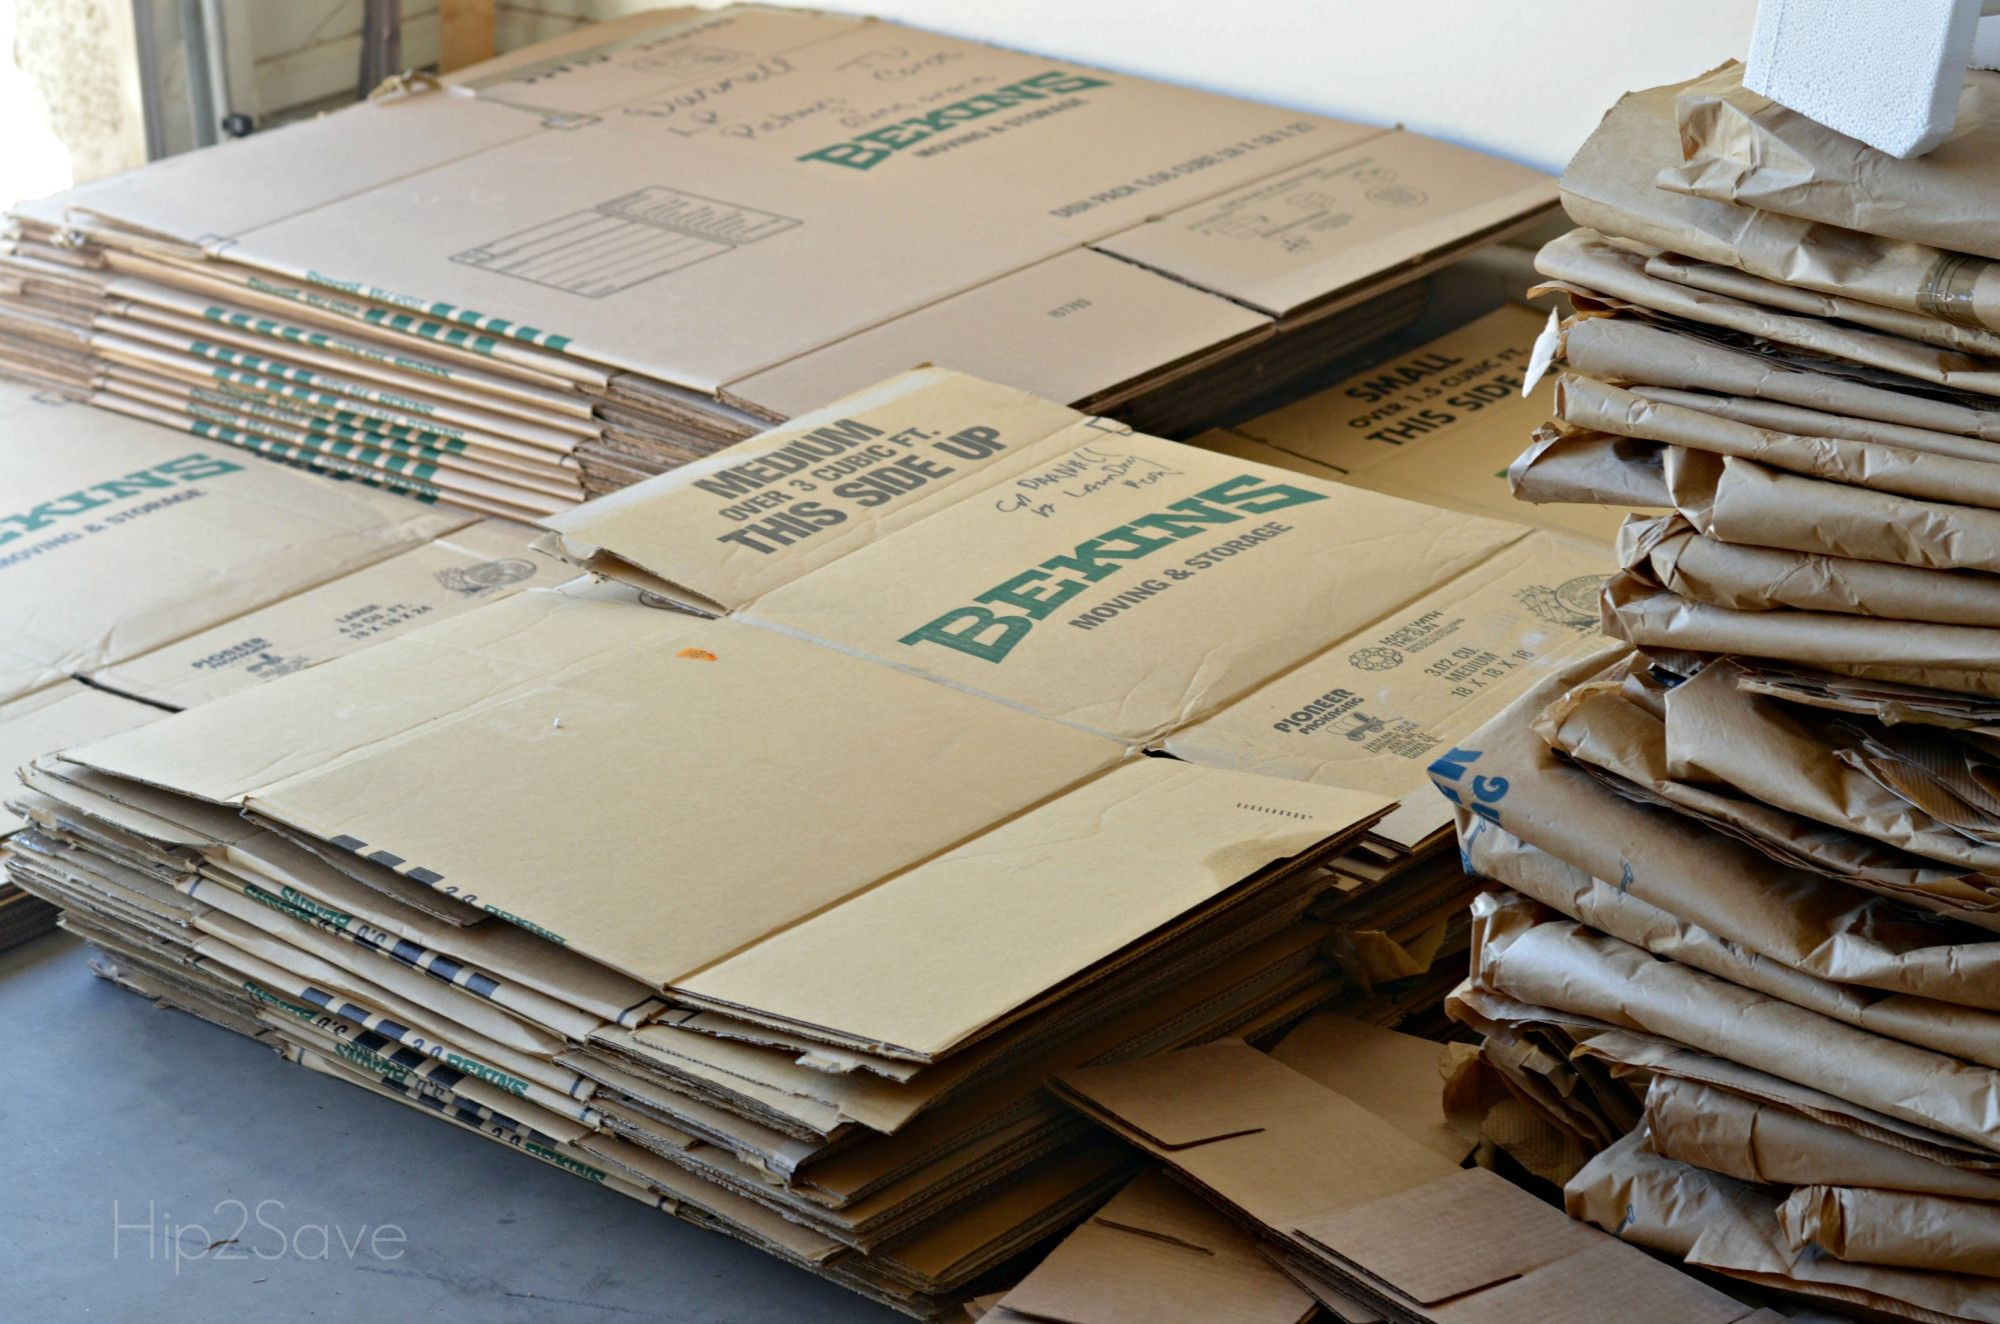 Buy and sell your moving boxes on Craigslist | Packing to ...